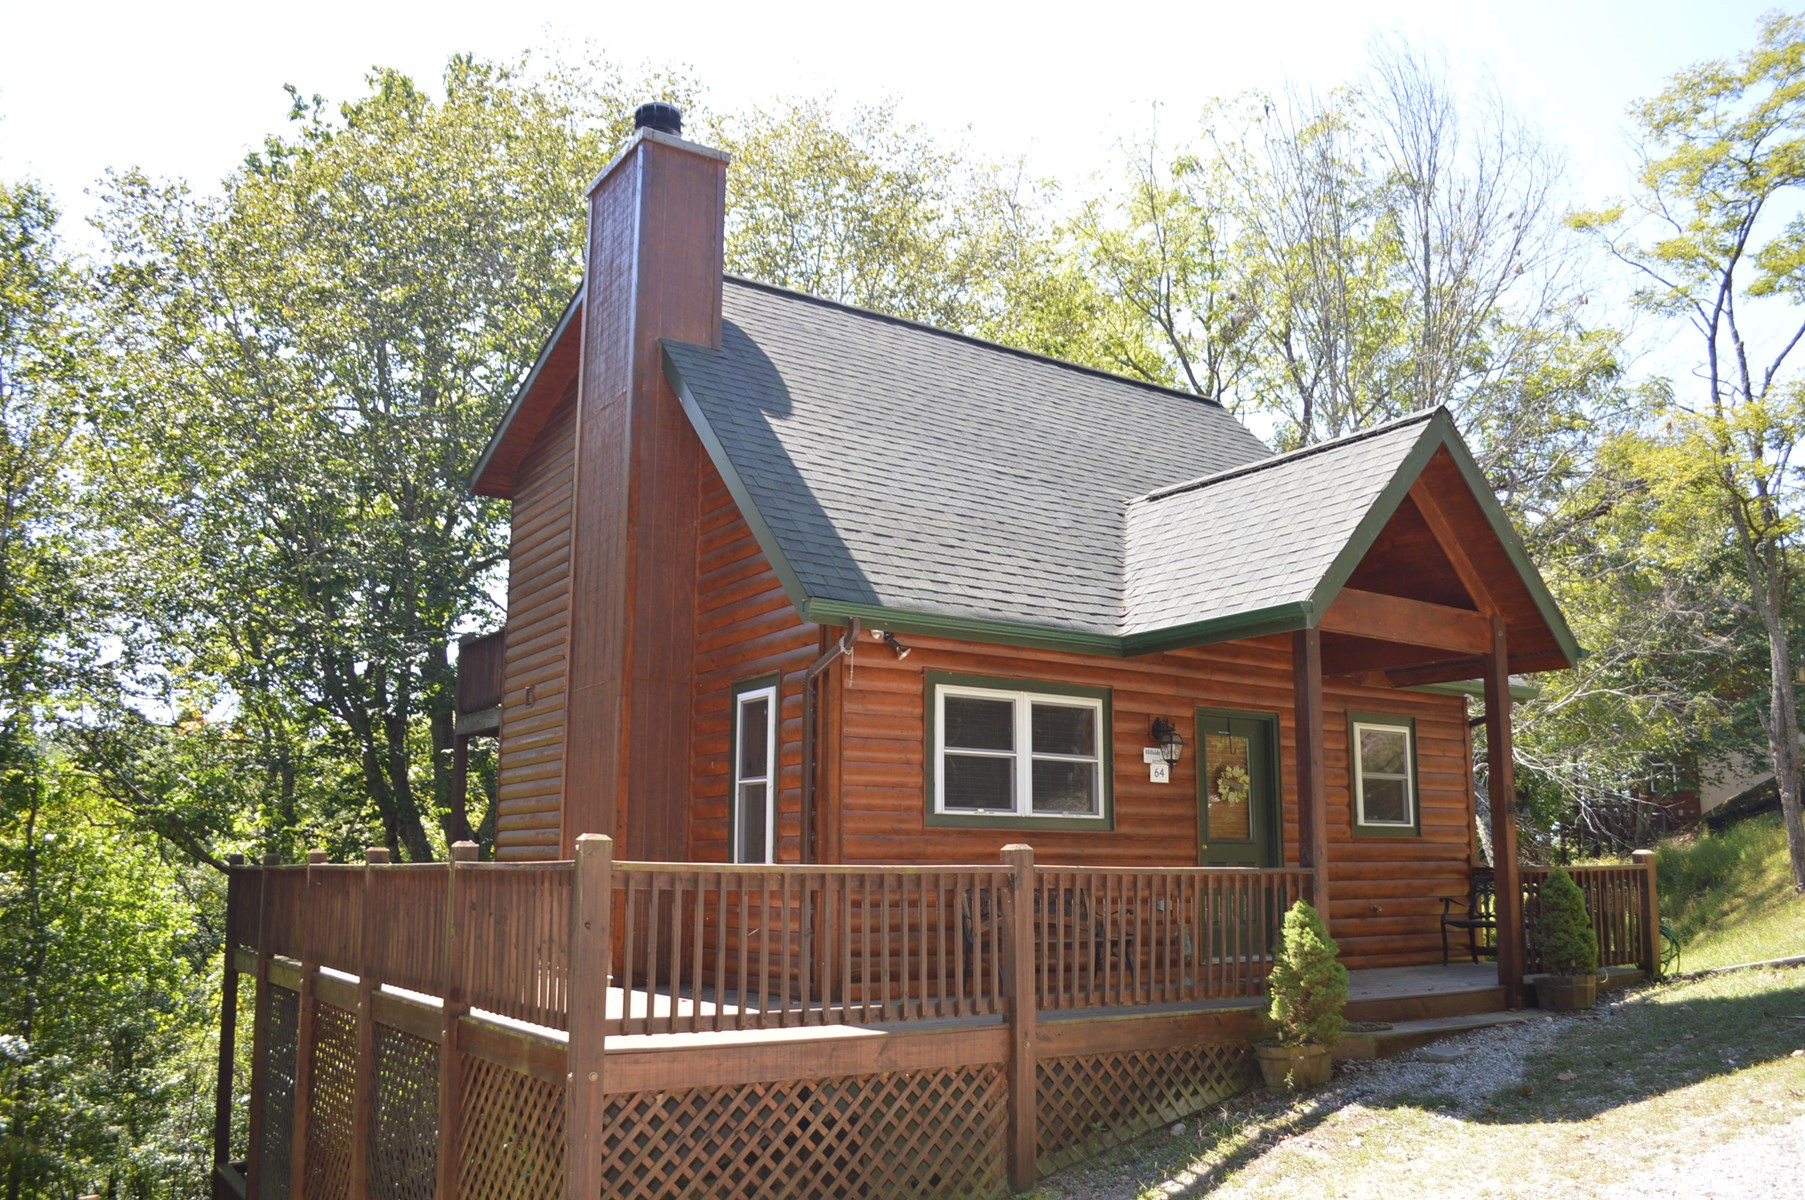 Nice Log Cabin in Gated Community In Piney Creek, NC